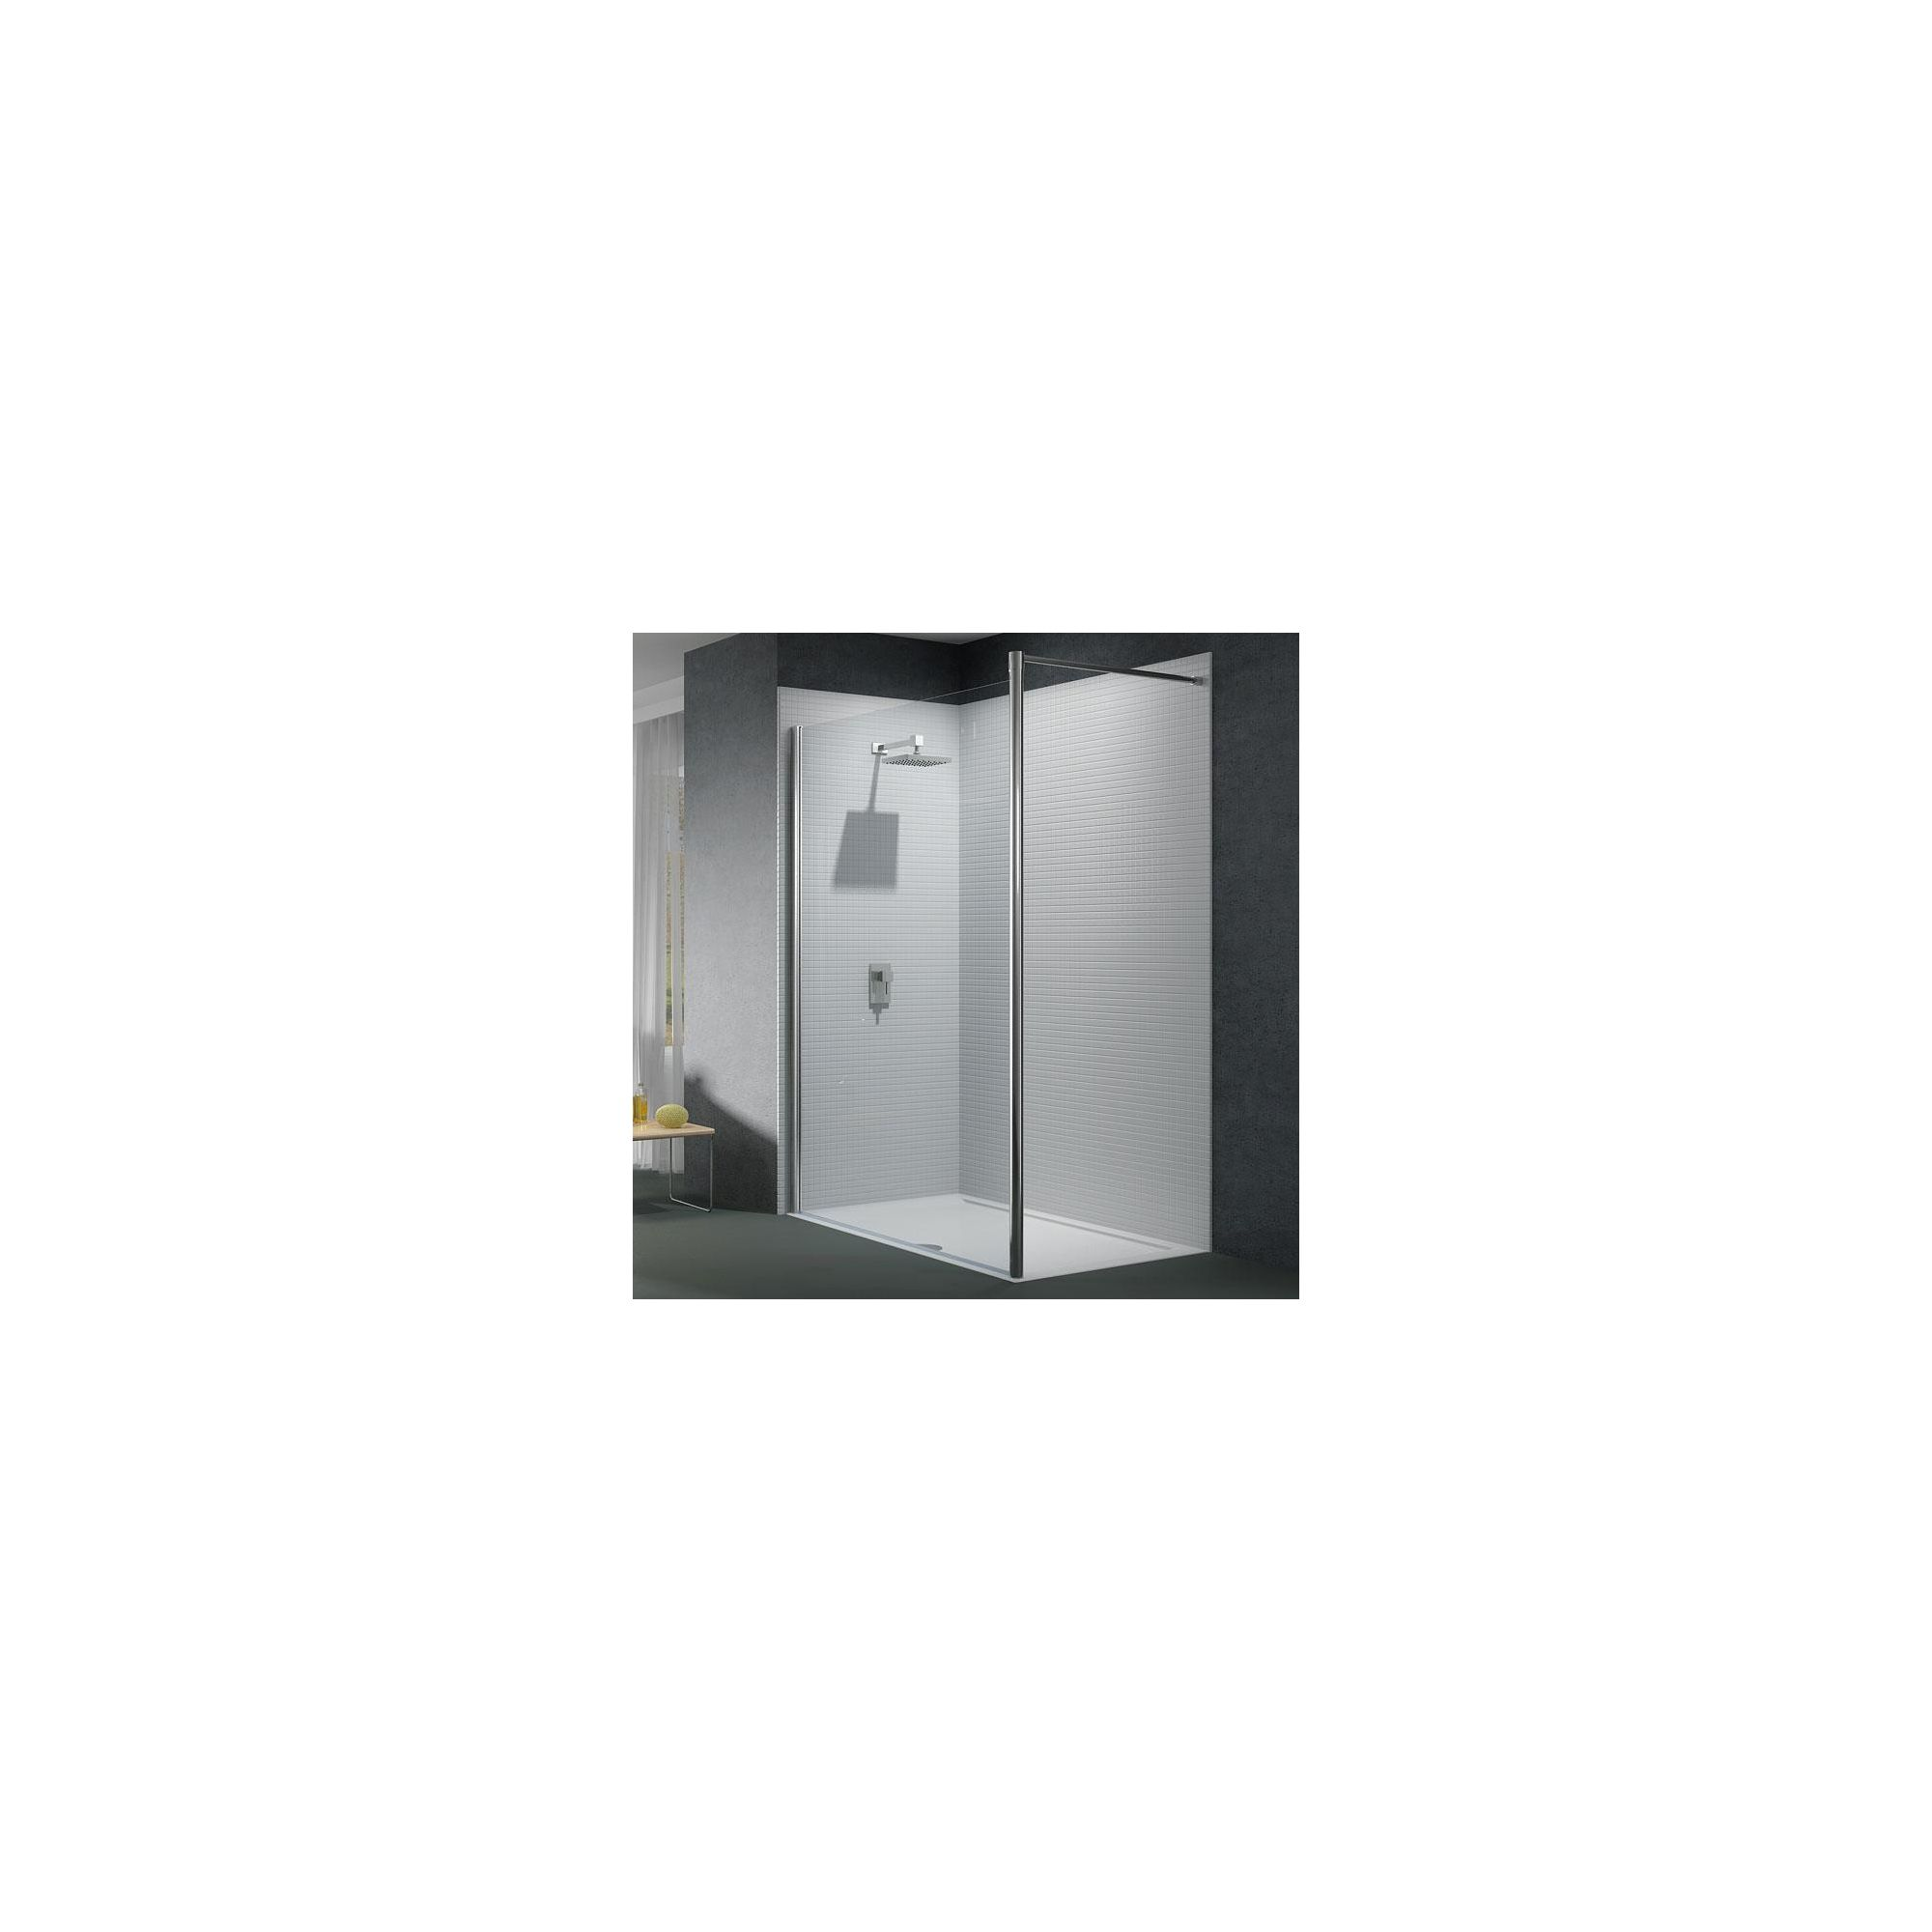 Merlyn Series 6 Wet Room Glass Shower Panel, 900mm Wide, 6mm Glass, Horizontal Support at Tesco Direct